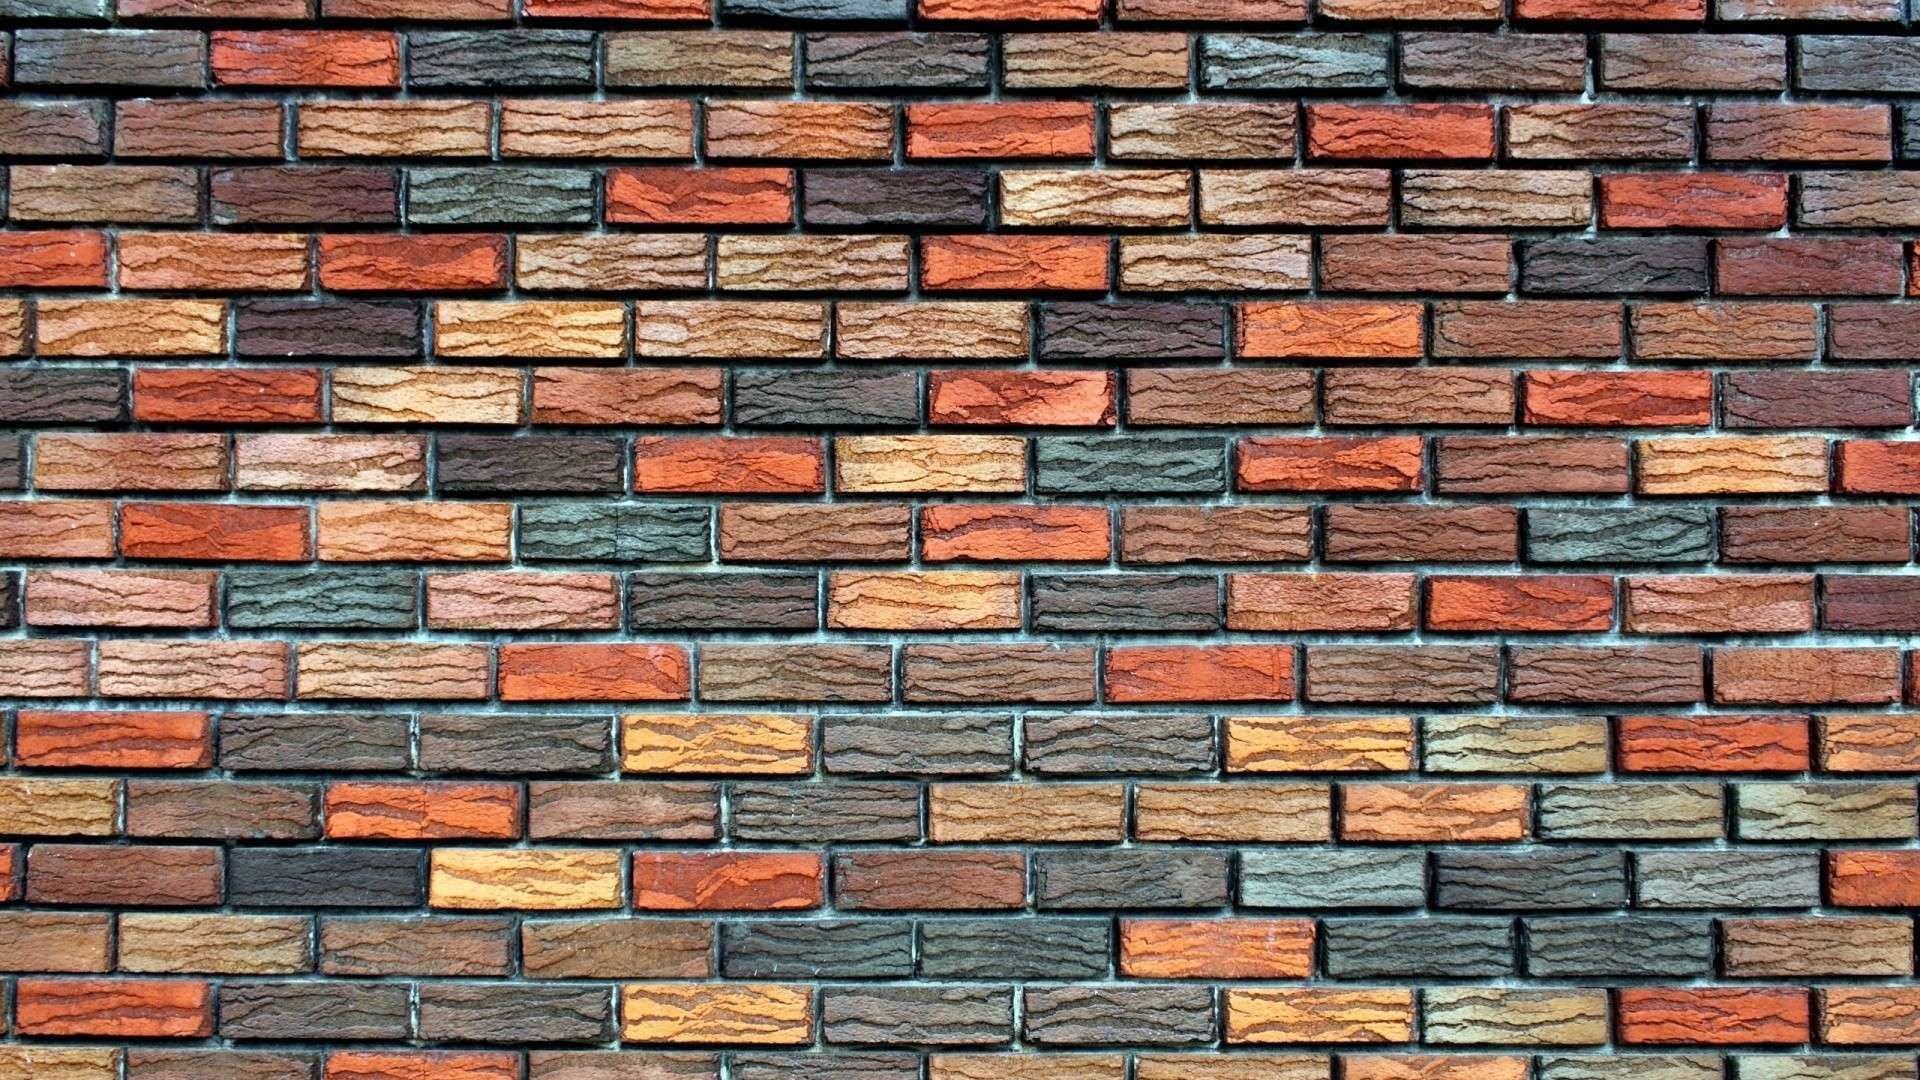 Bricks Texture Background Wall Hd Wallpaper 1080p In 2020 Brick Wallpaper Cool Wallpapers For